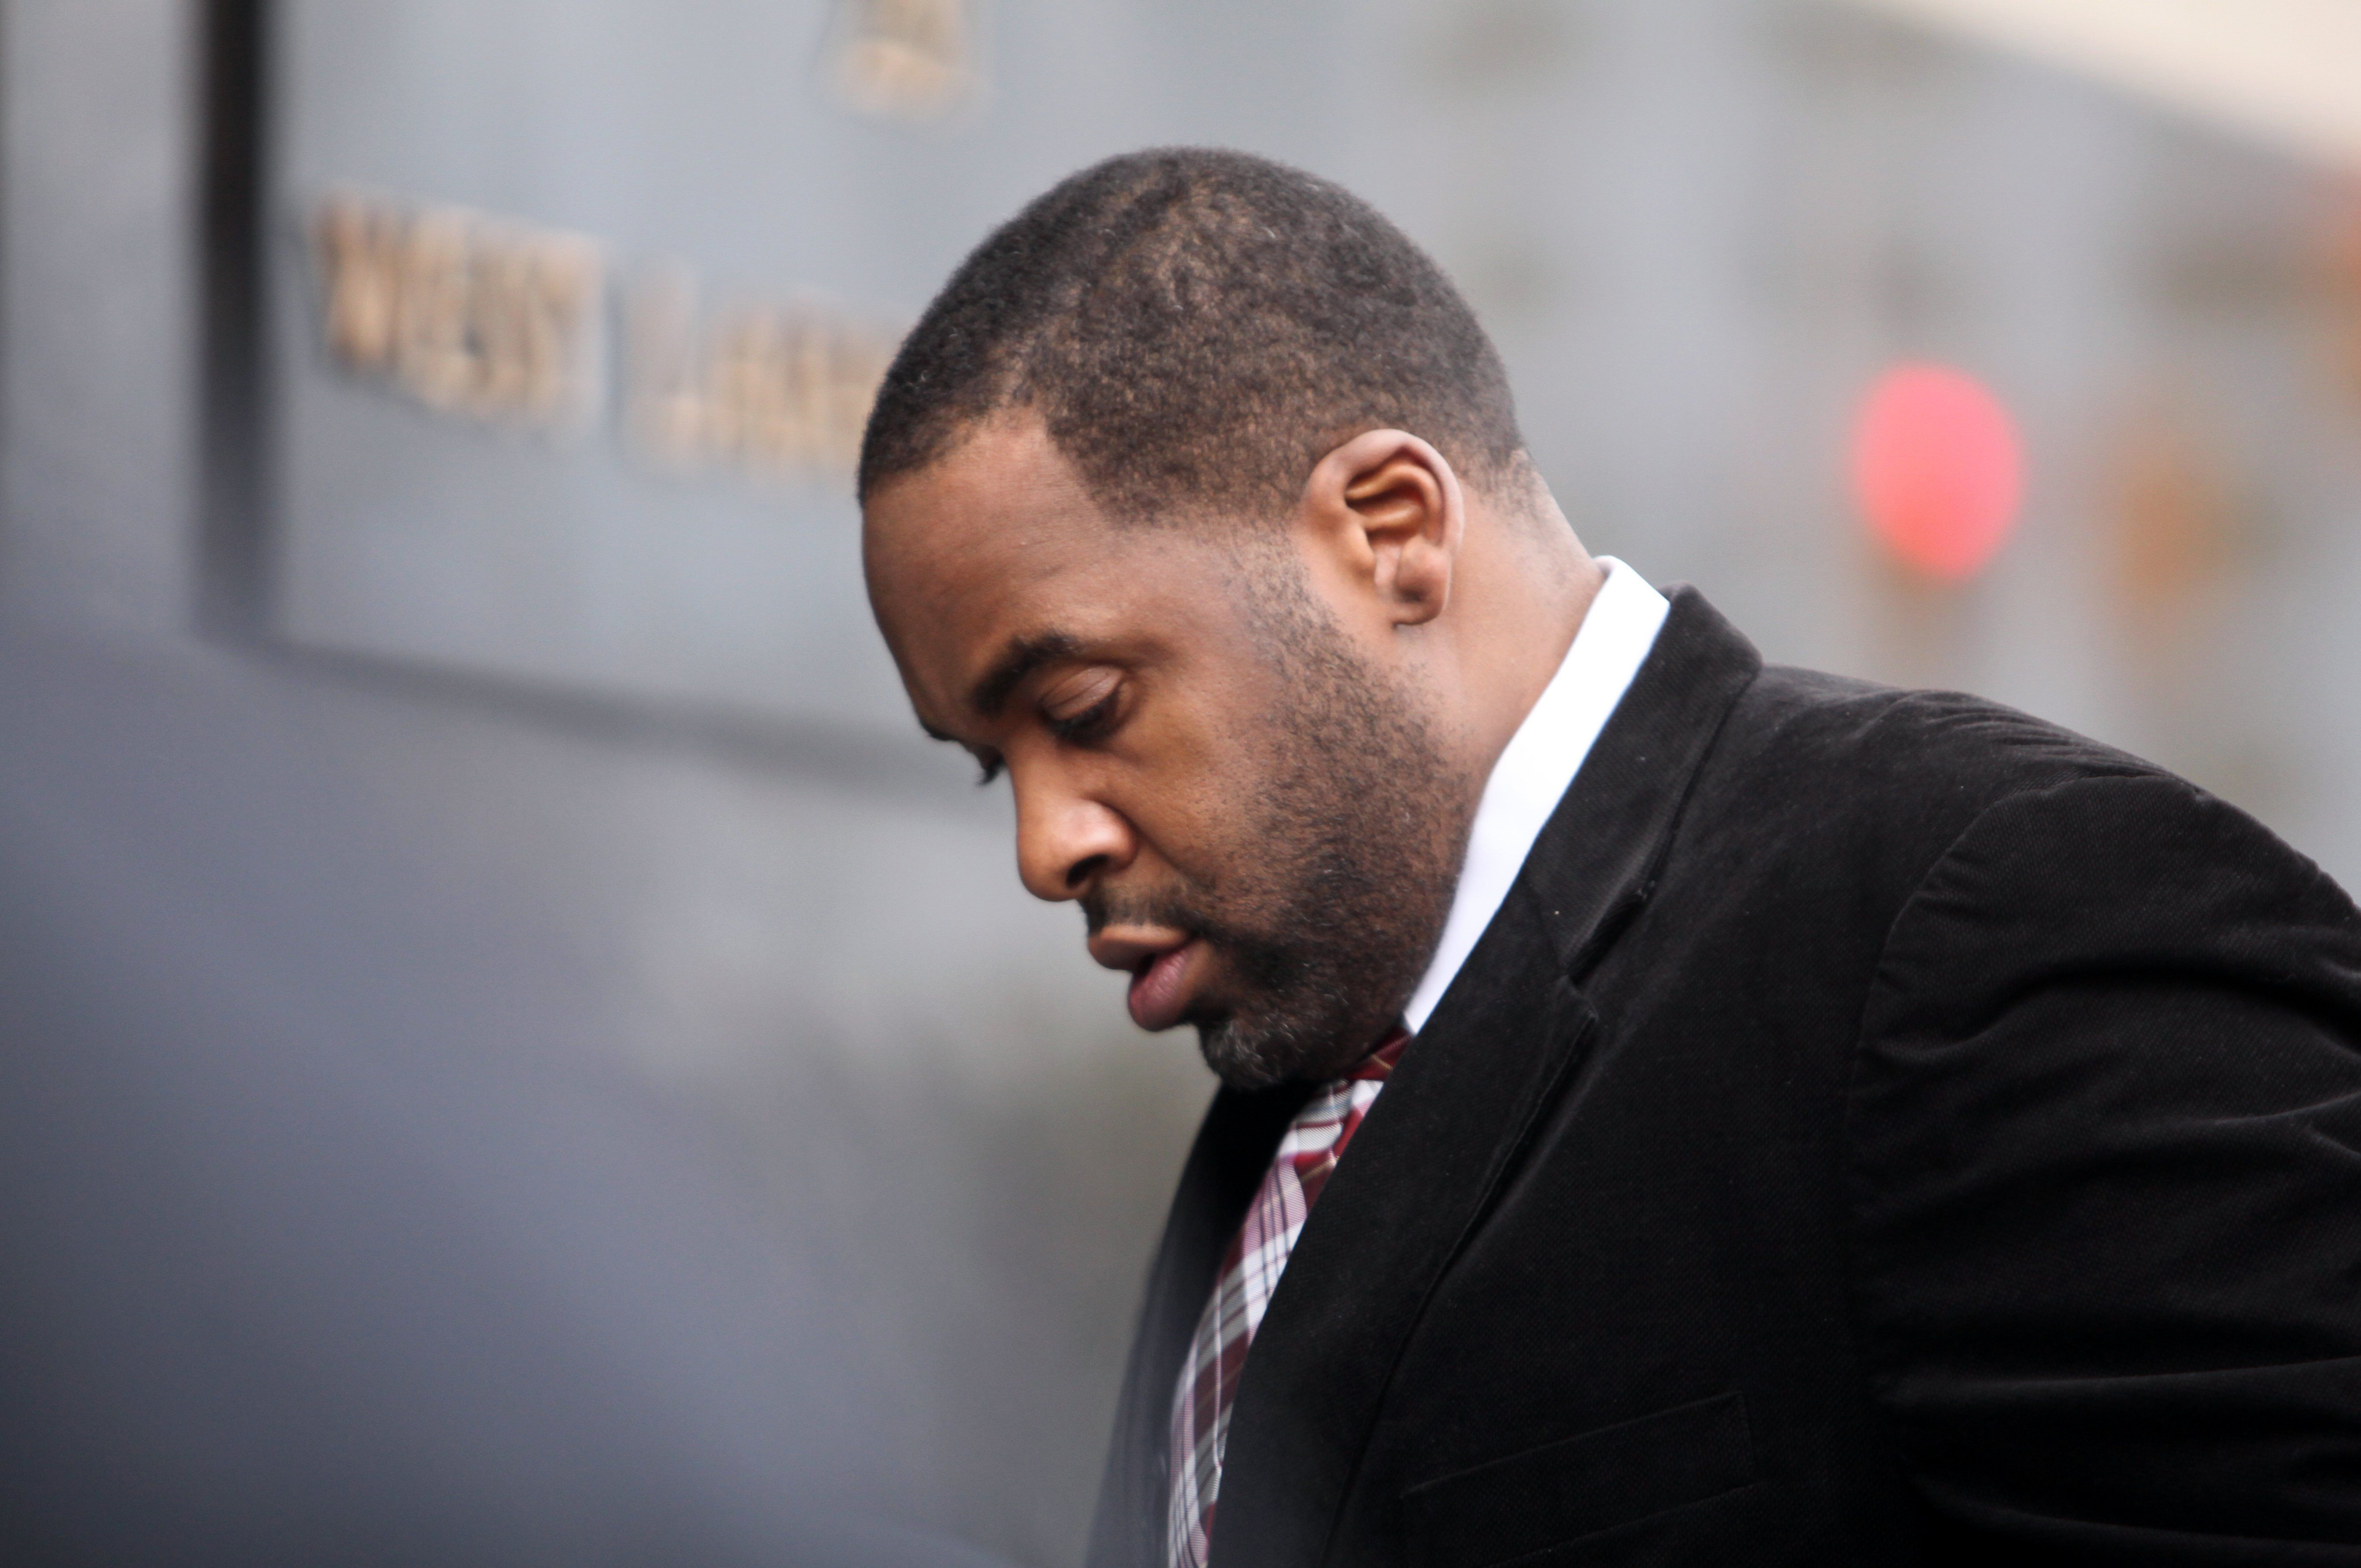 Kwame Kilpatrick's son to Trump: 'Please grant my father mercy'